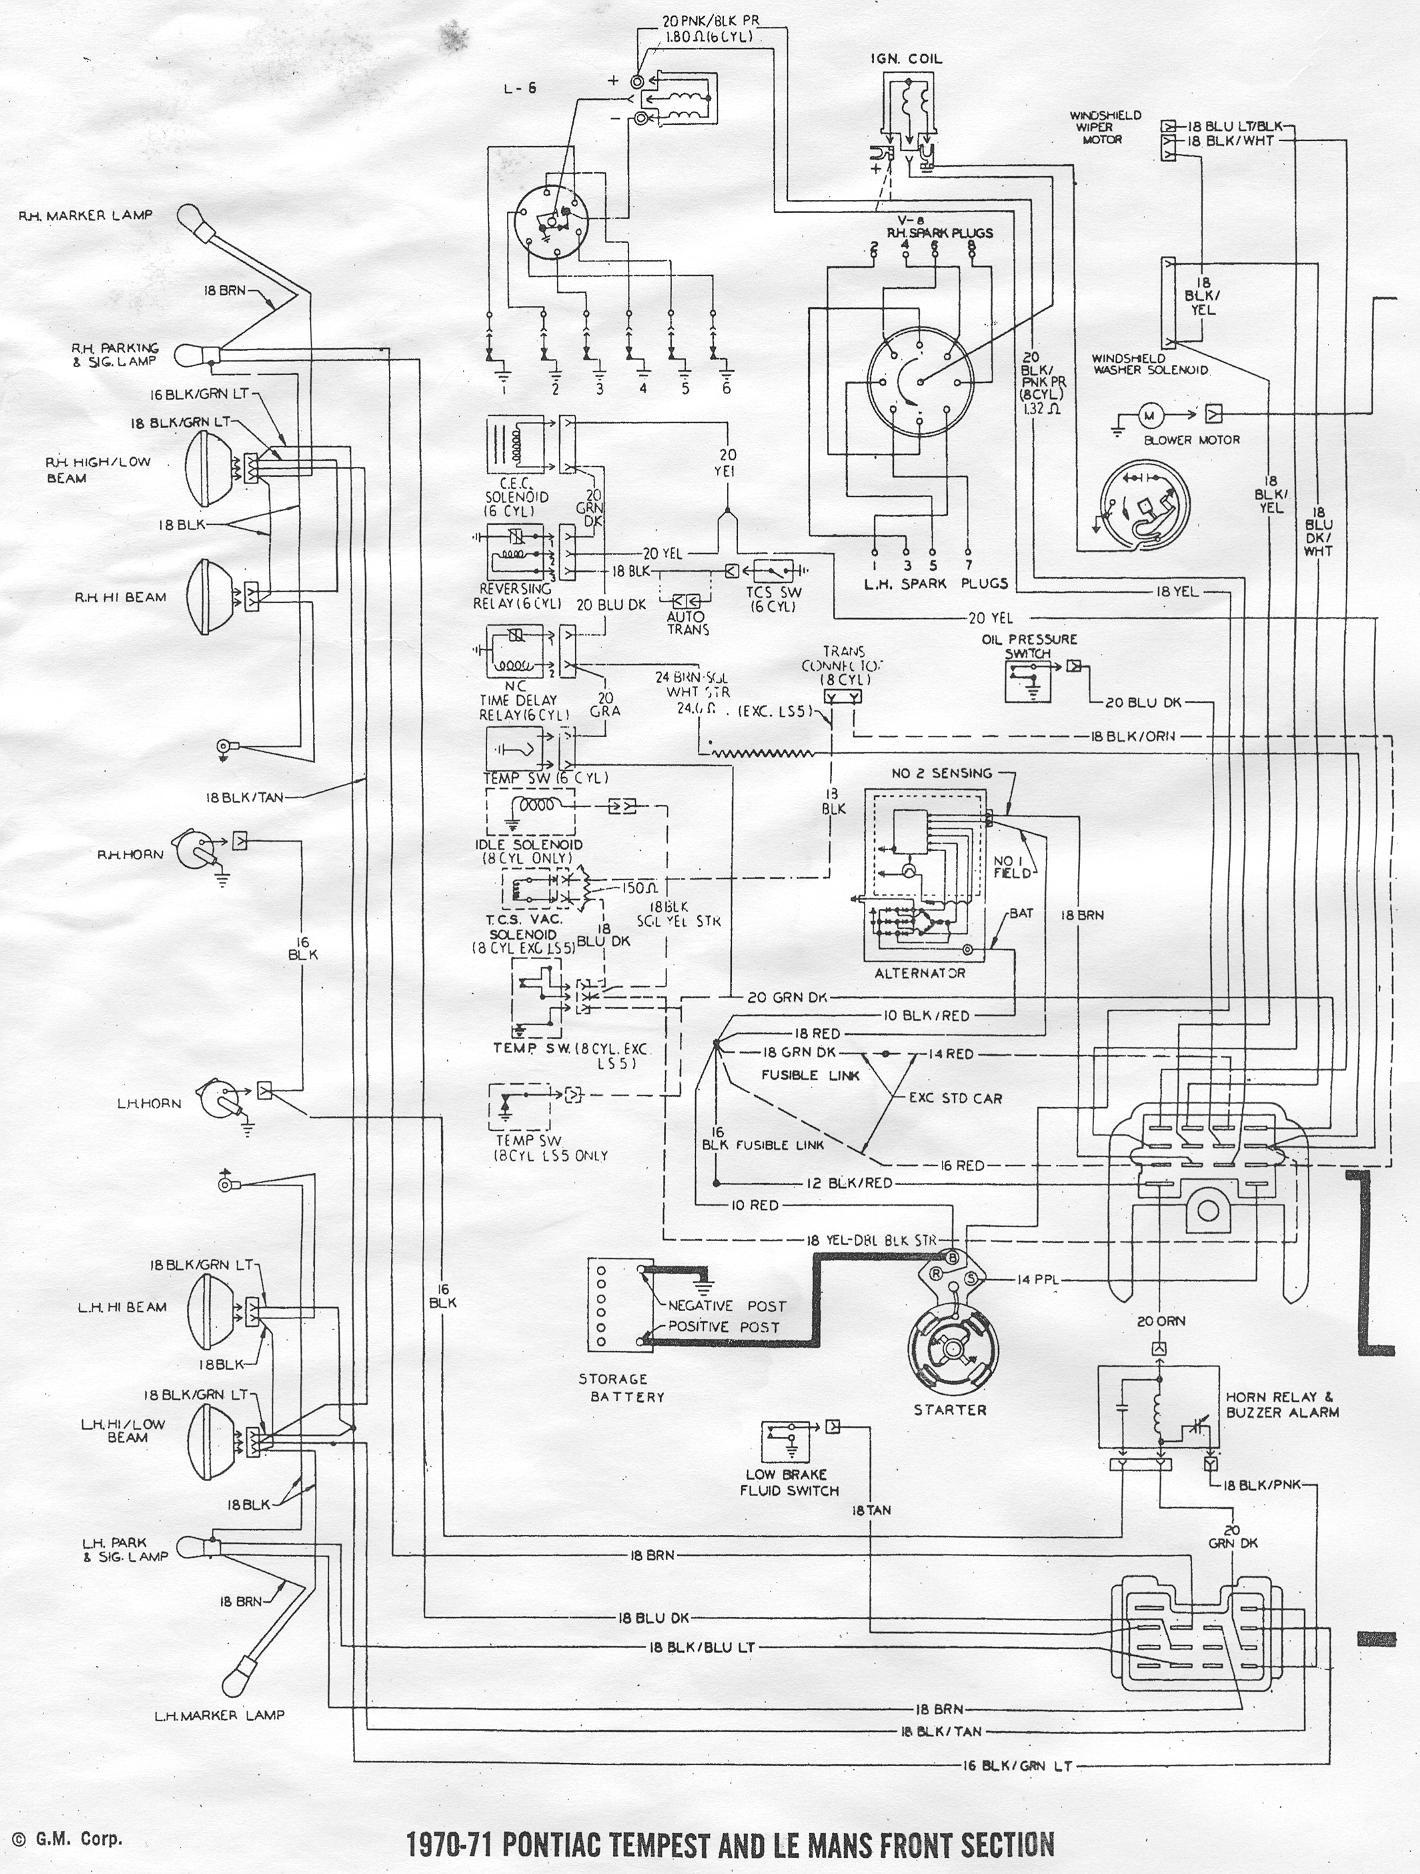 70 Chevelle Ss Fuse Box Diagram Image Wiring 1970 Dodge Challenger Tach Harness 1964 77 Kit Highway 22 By American